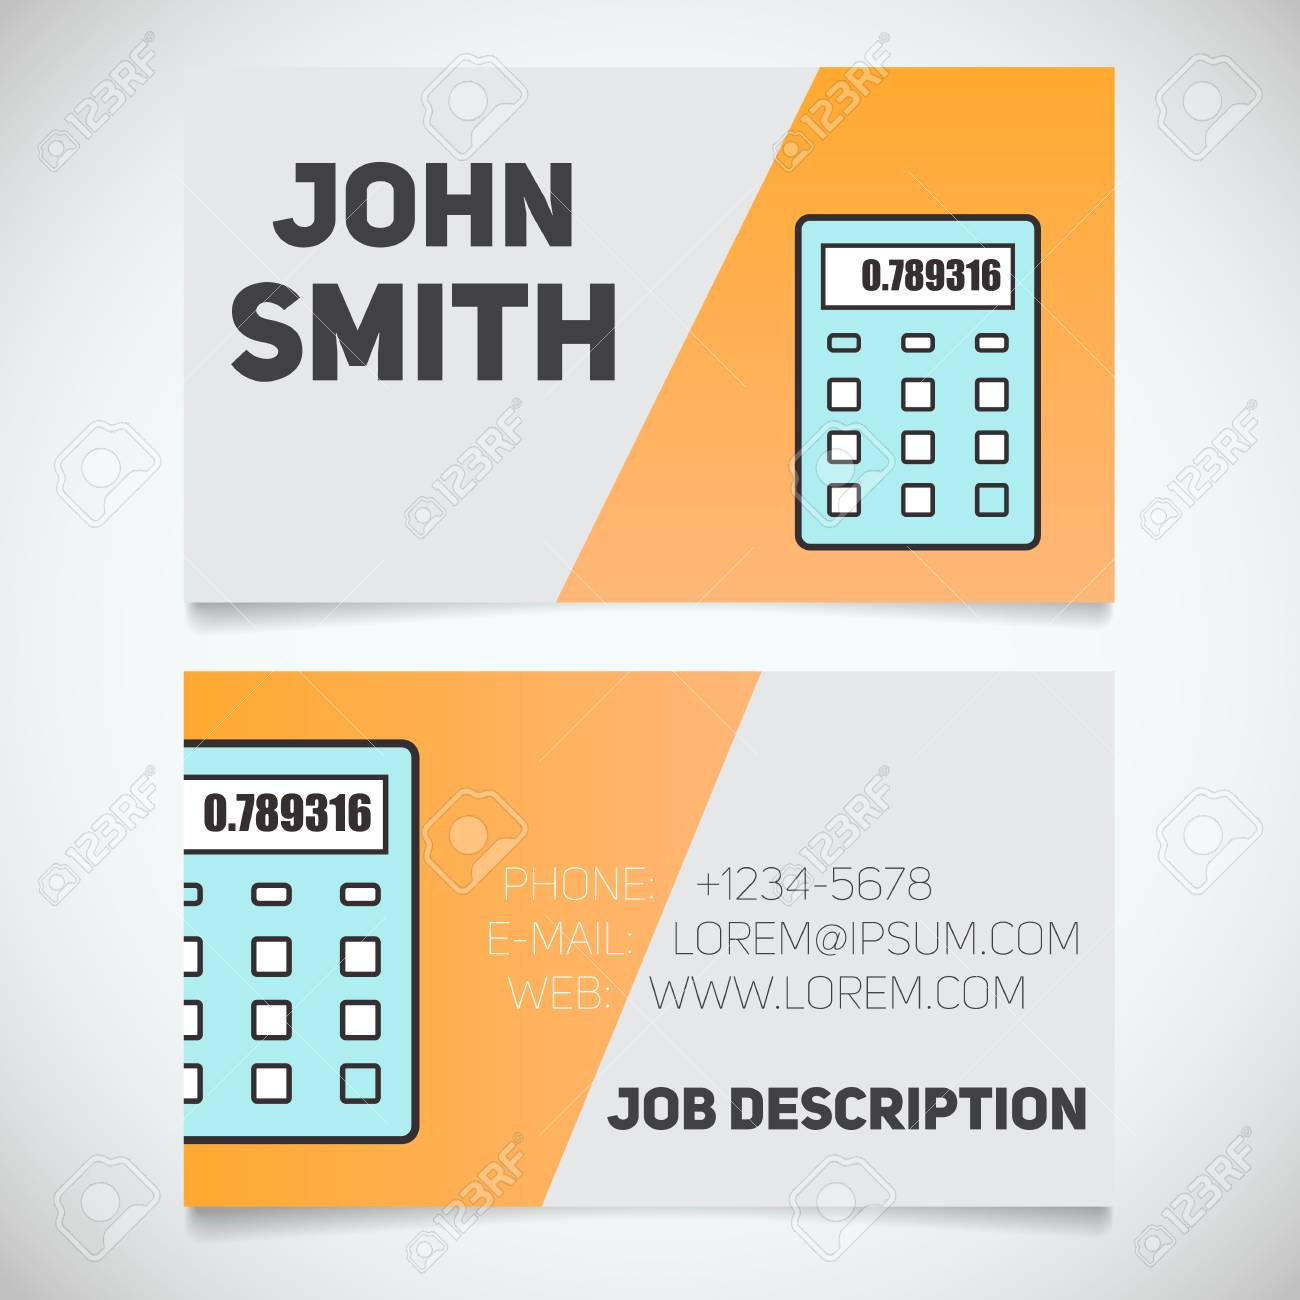 Business card print template with calculator logo manager business card print template with calculator logo manager accountant financier stationery design reheart Choice Image